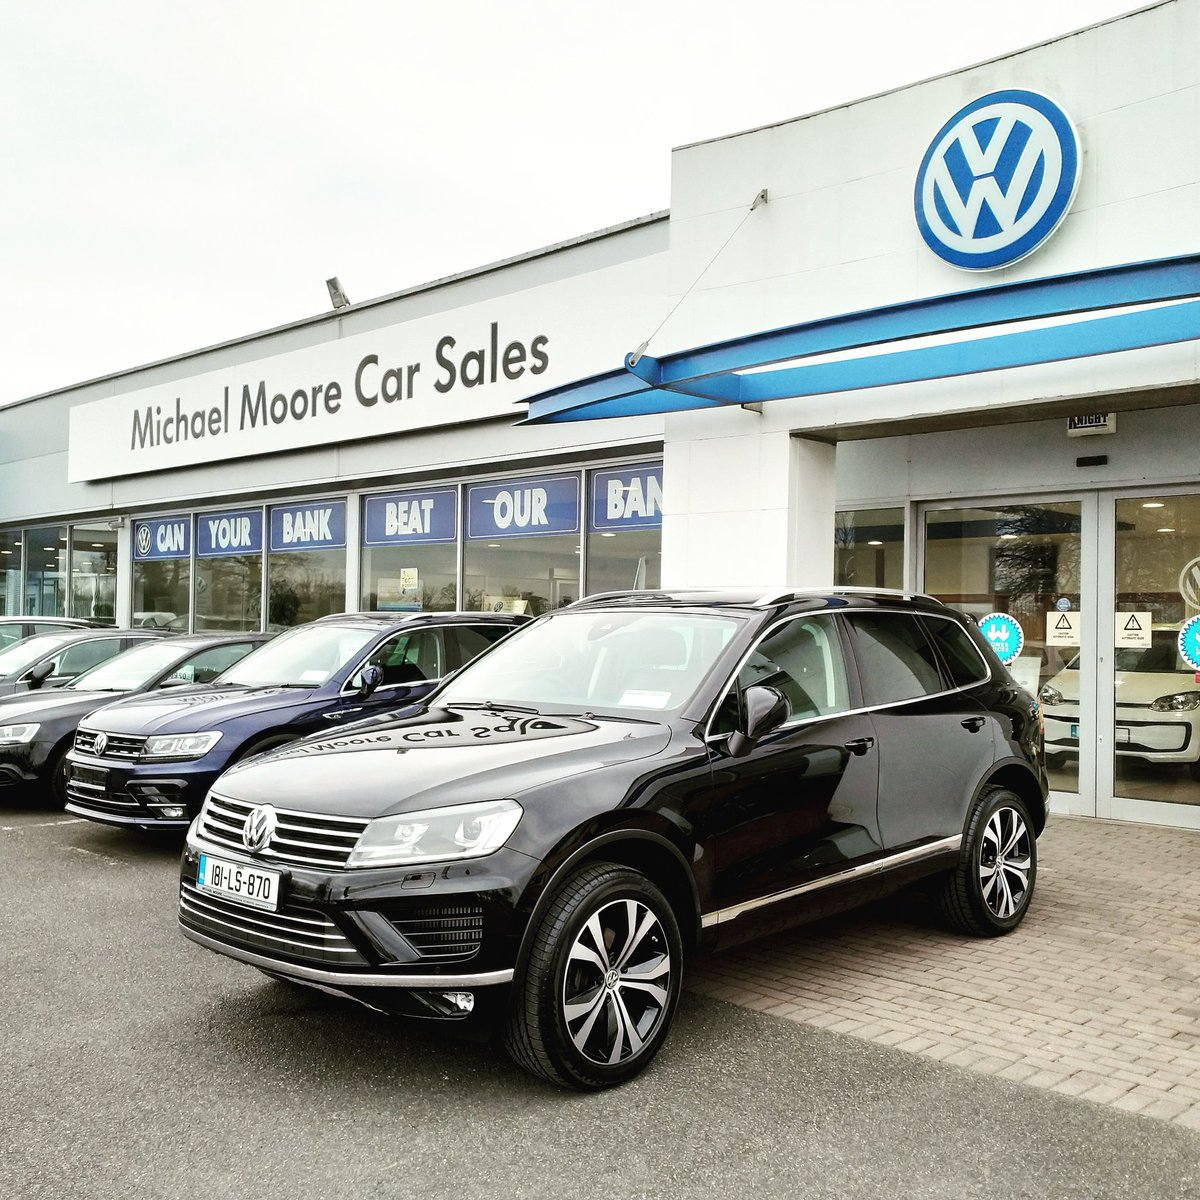 Michael Moore Vw On Twitter A New Volkswagen Touareg Getting